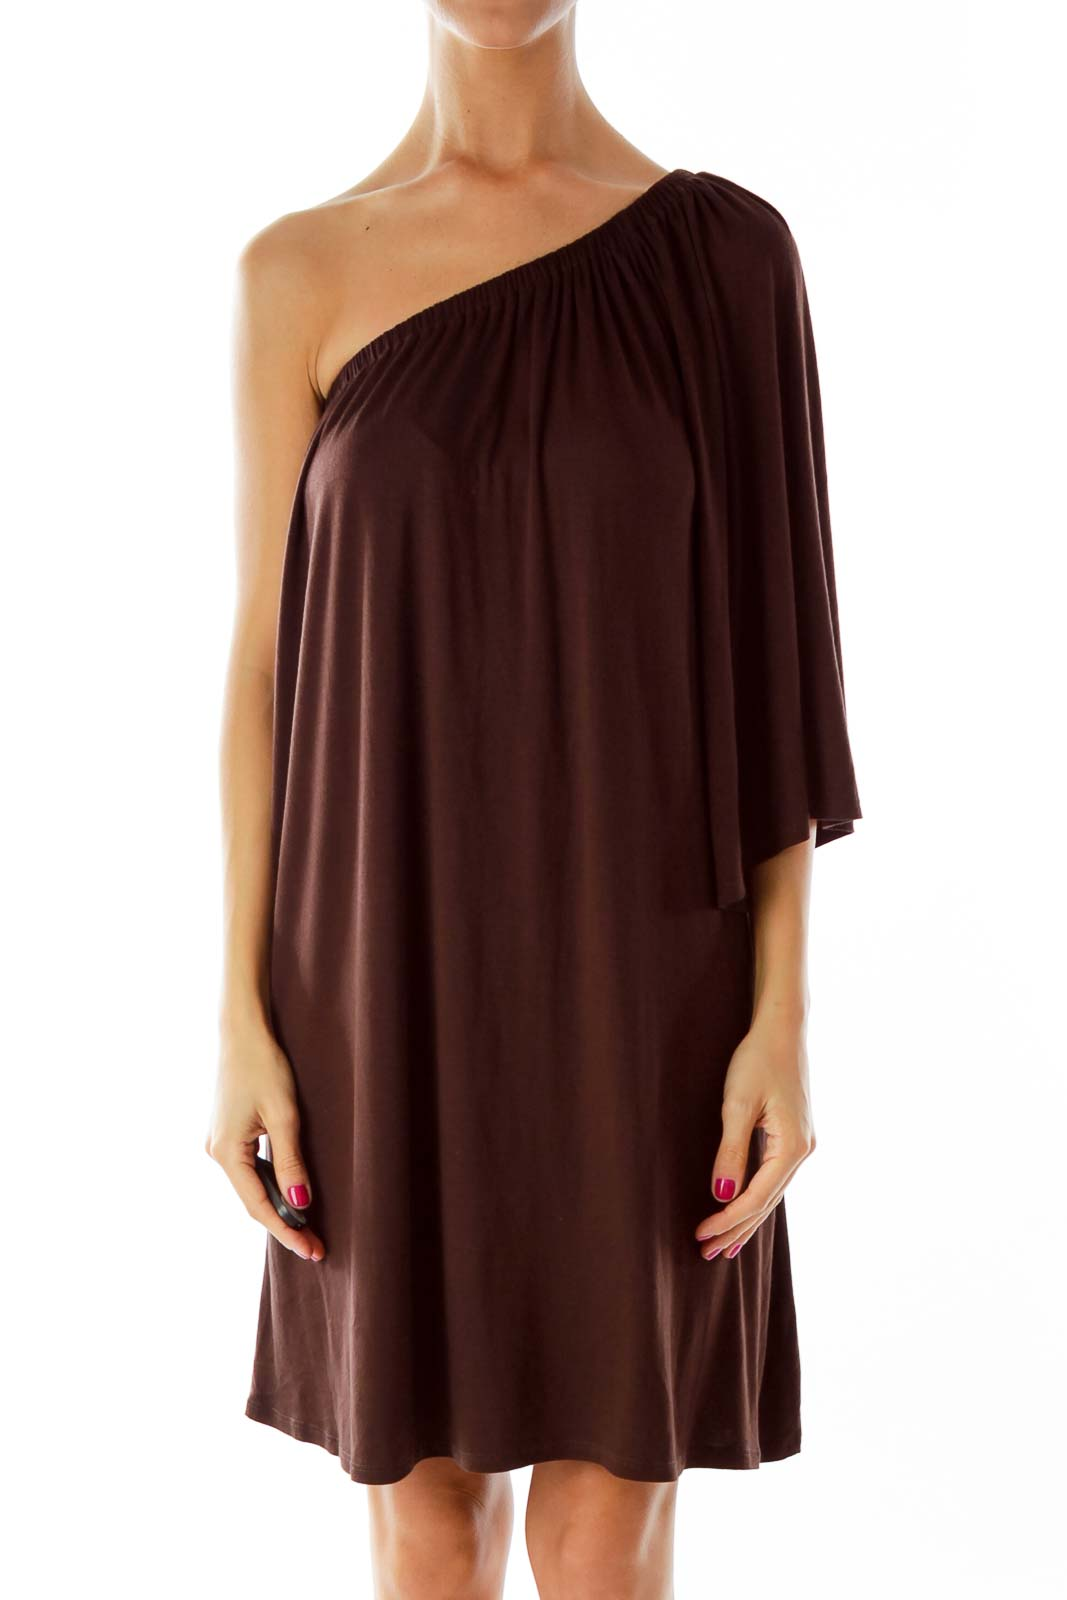 Brown One-Shoulder Cocktail Dress